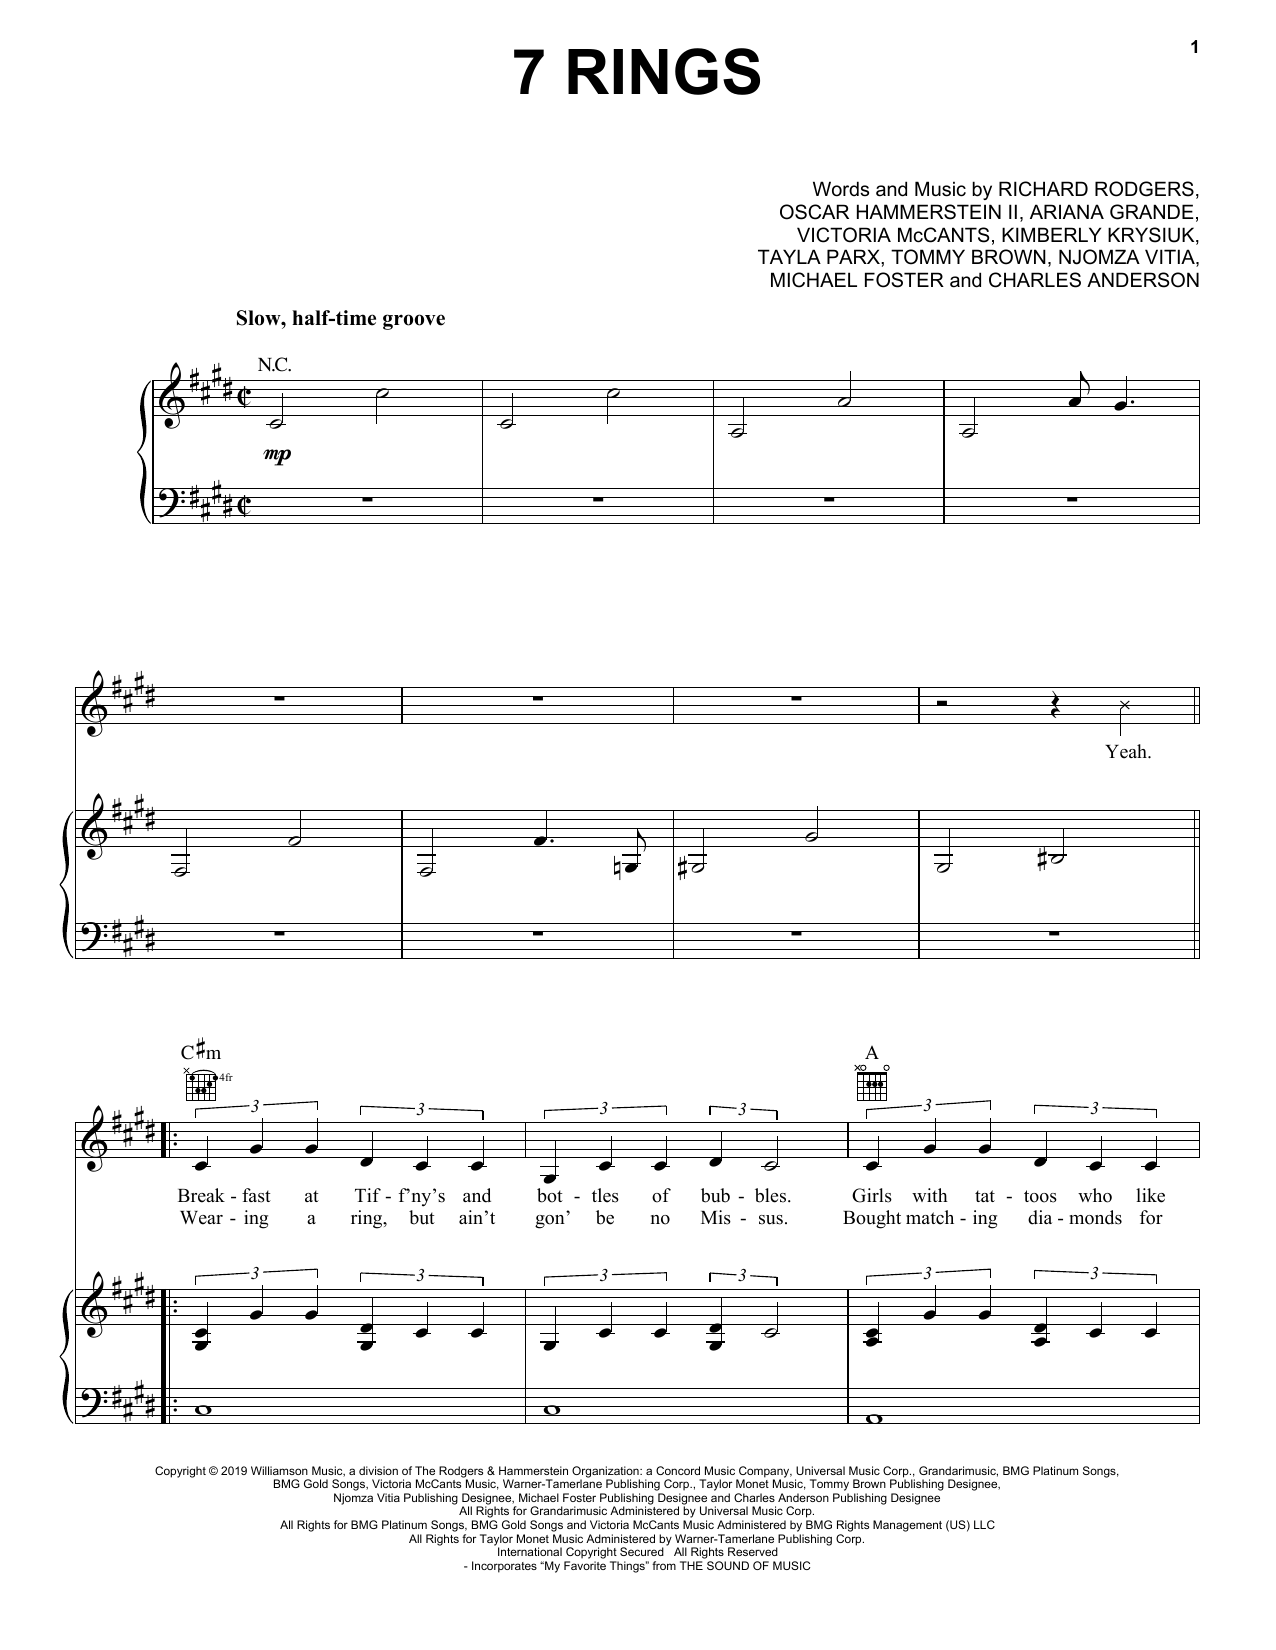 7 Years Piano Pdf ariana grande '7 rings' sheet music notes, chords | download printable  piano, vocal & guitar (right-hand melody) - sku: 408704